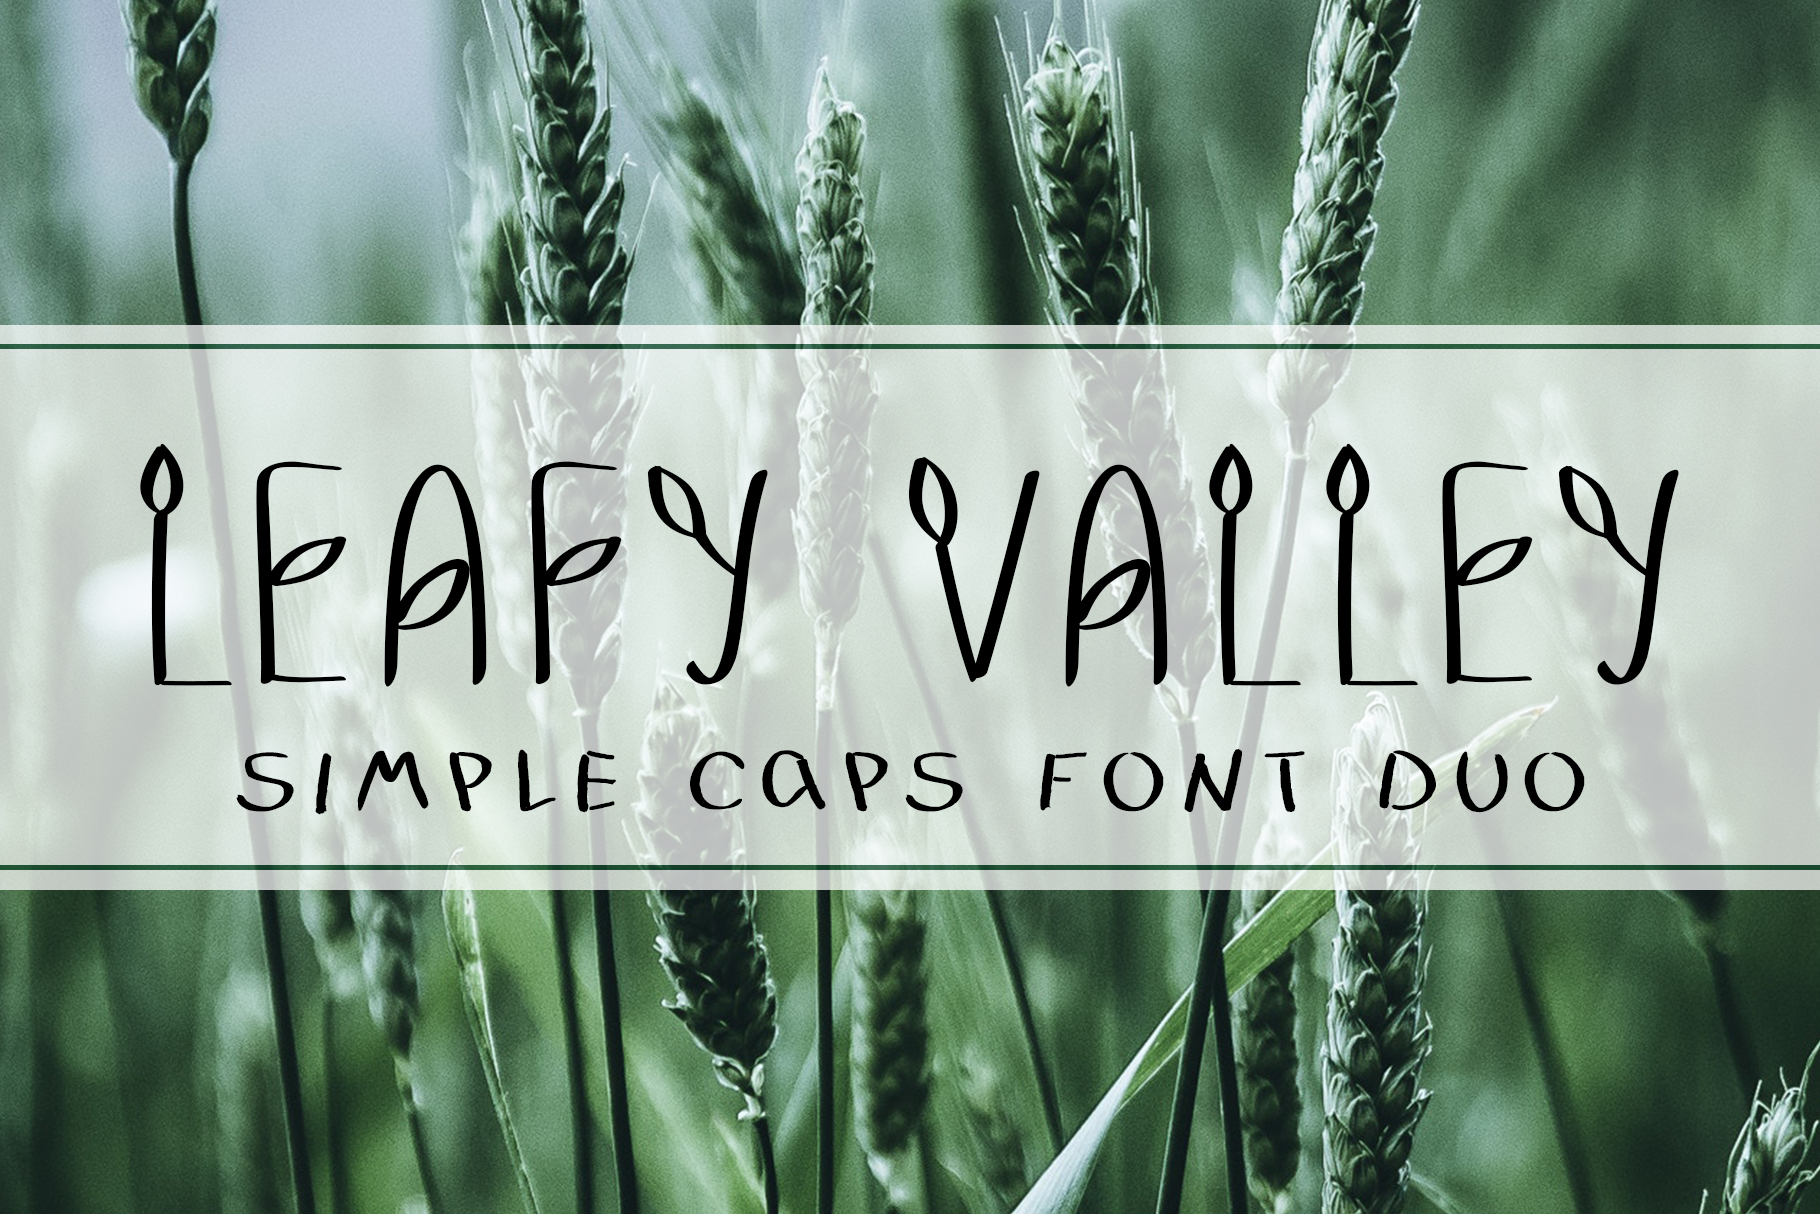 LEAFY VALLEY - Hand-drawn Font DUO example image 1